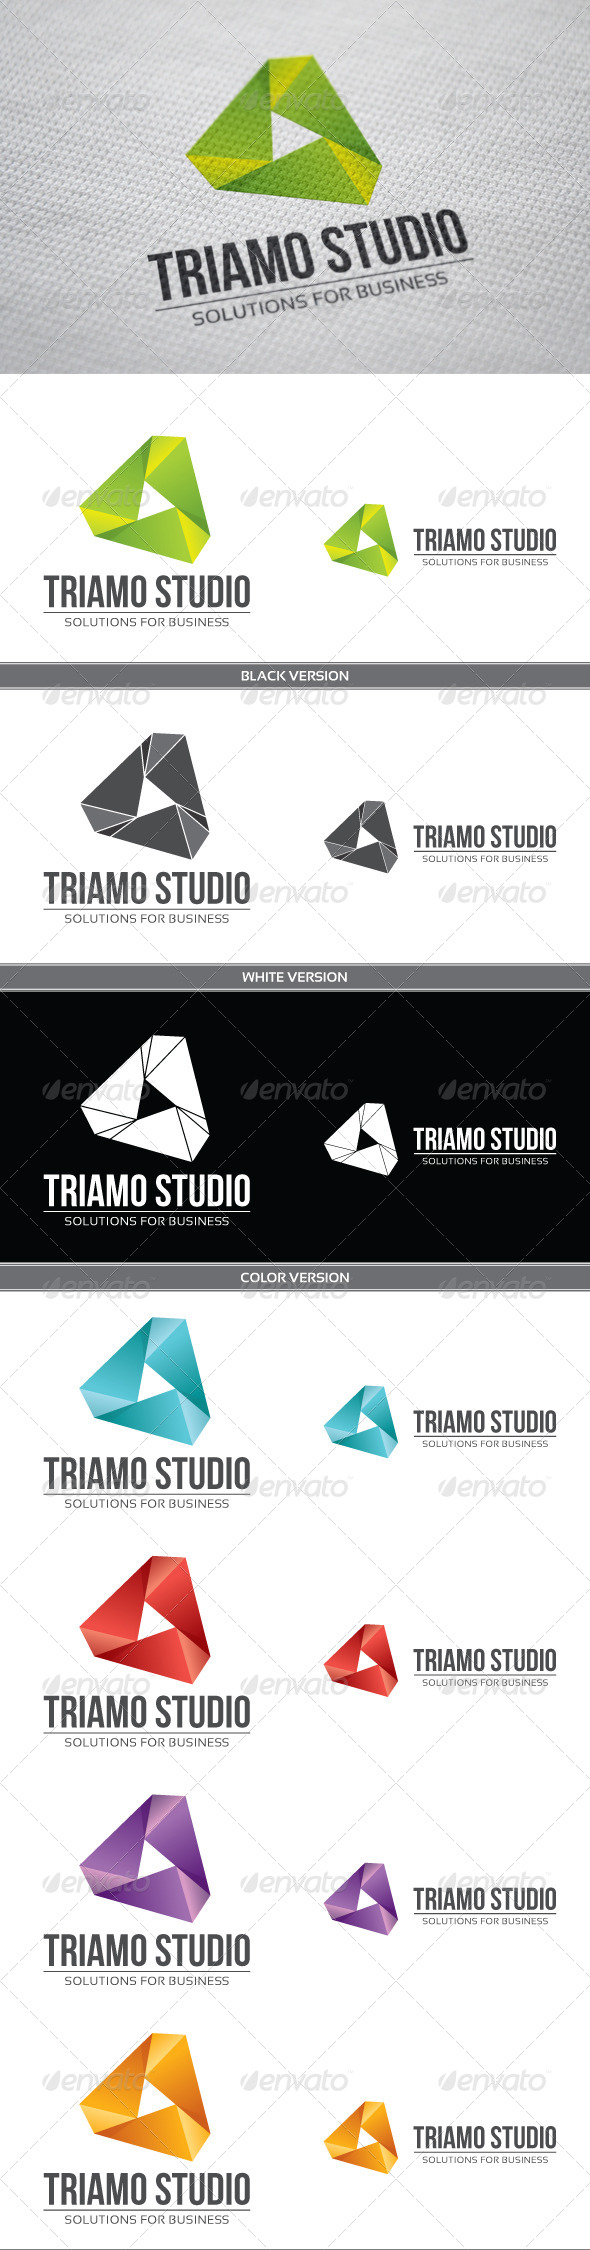 GraphicRiver Triamo Studio 3907415